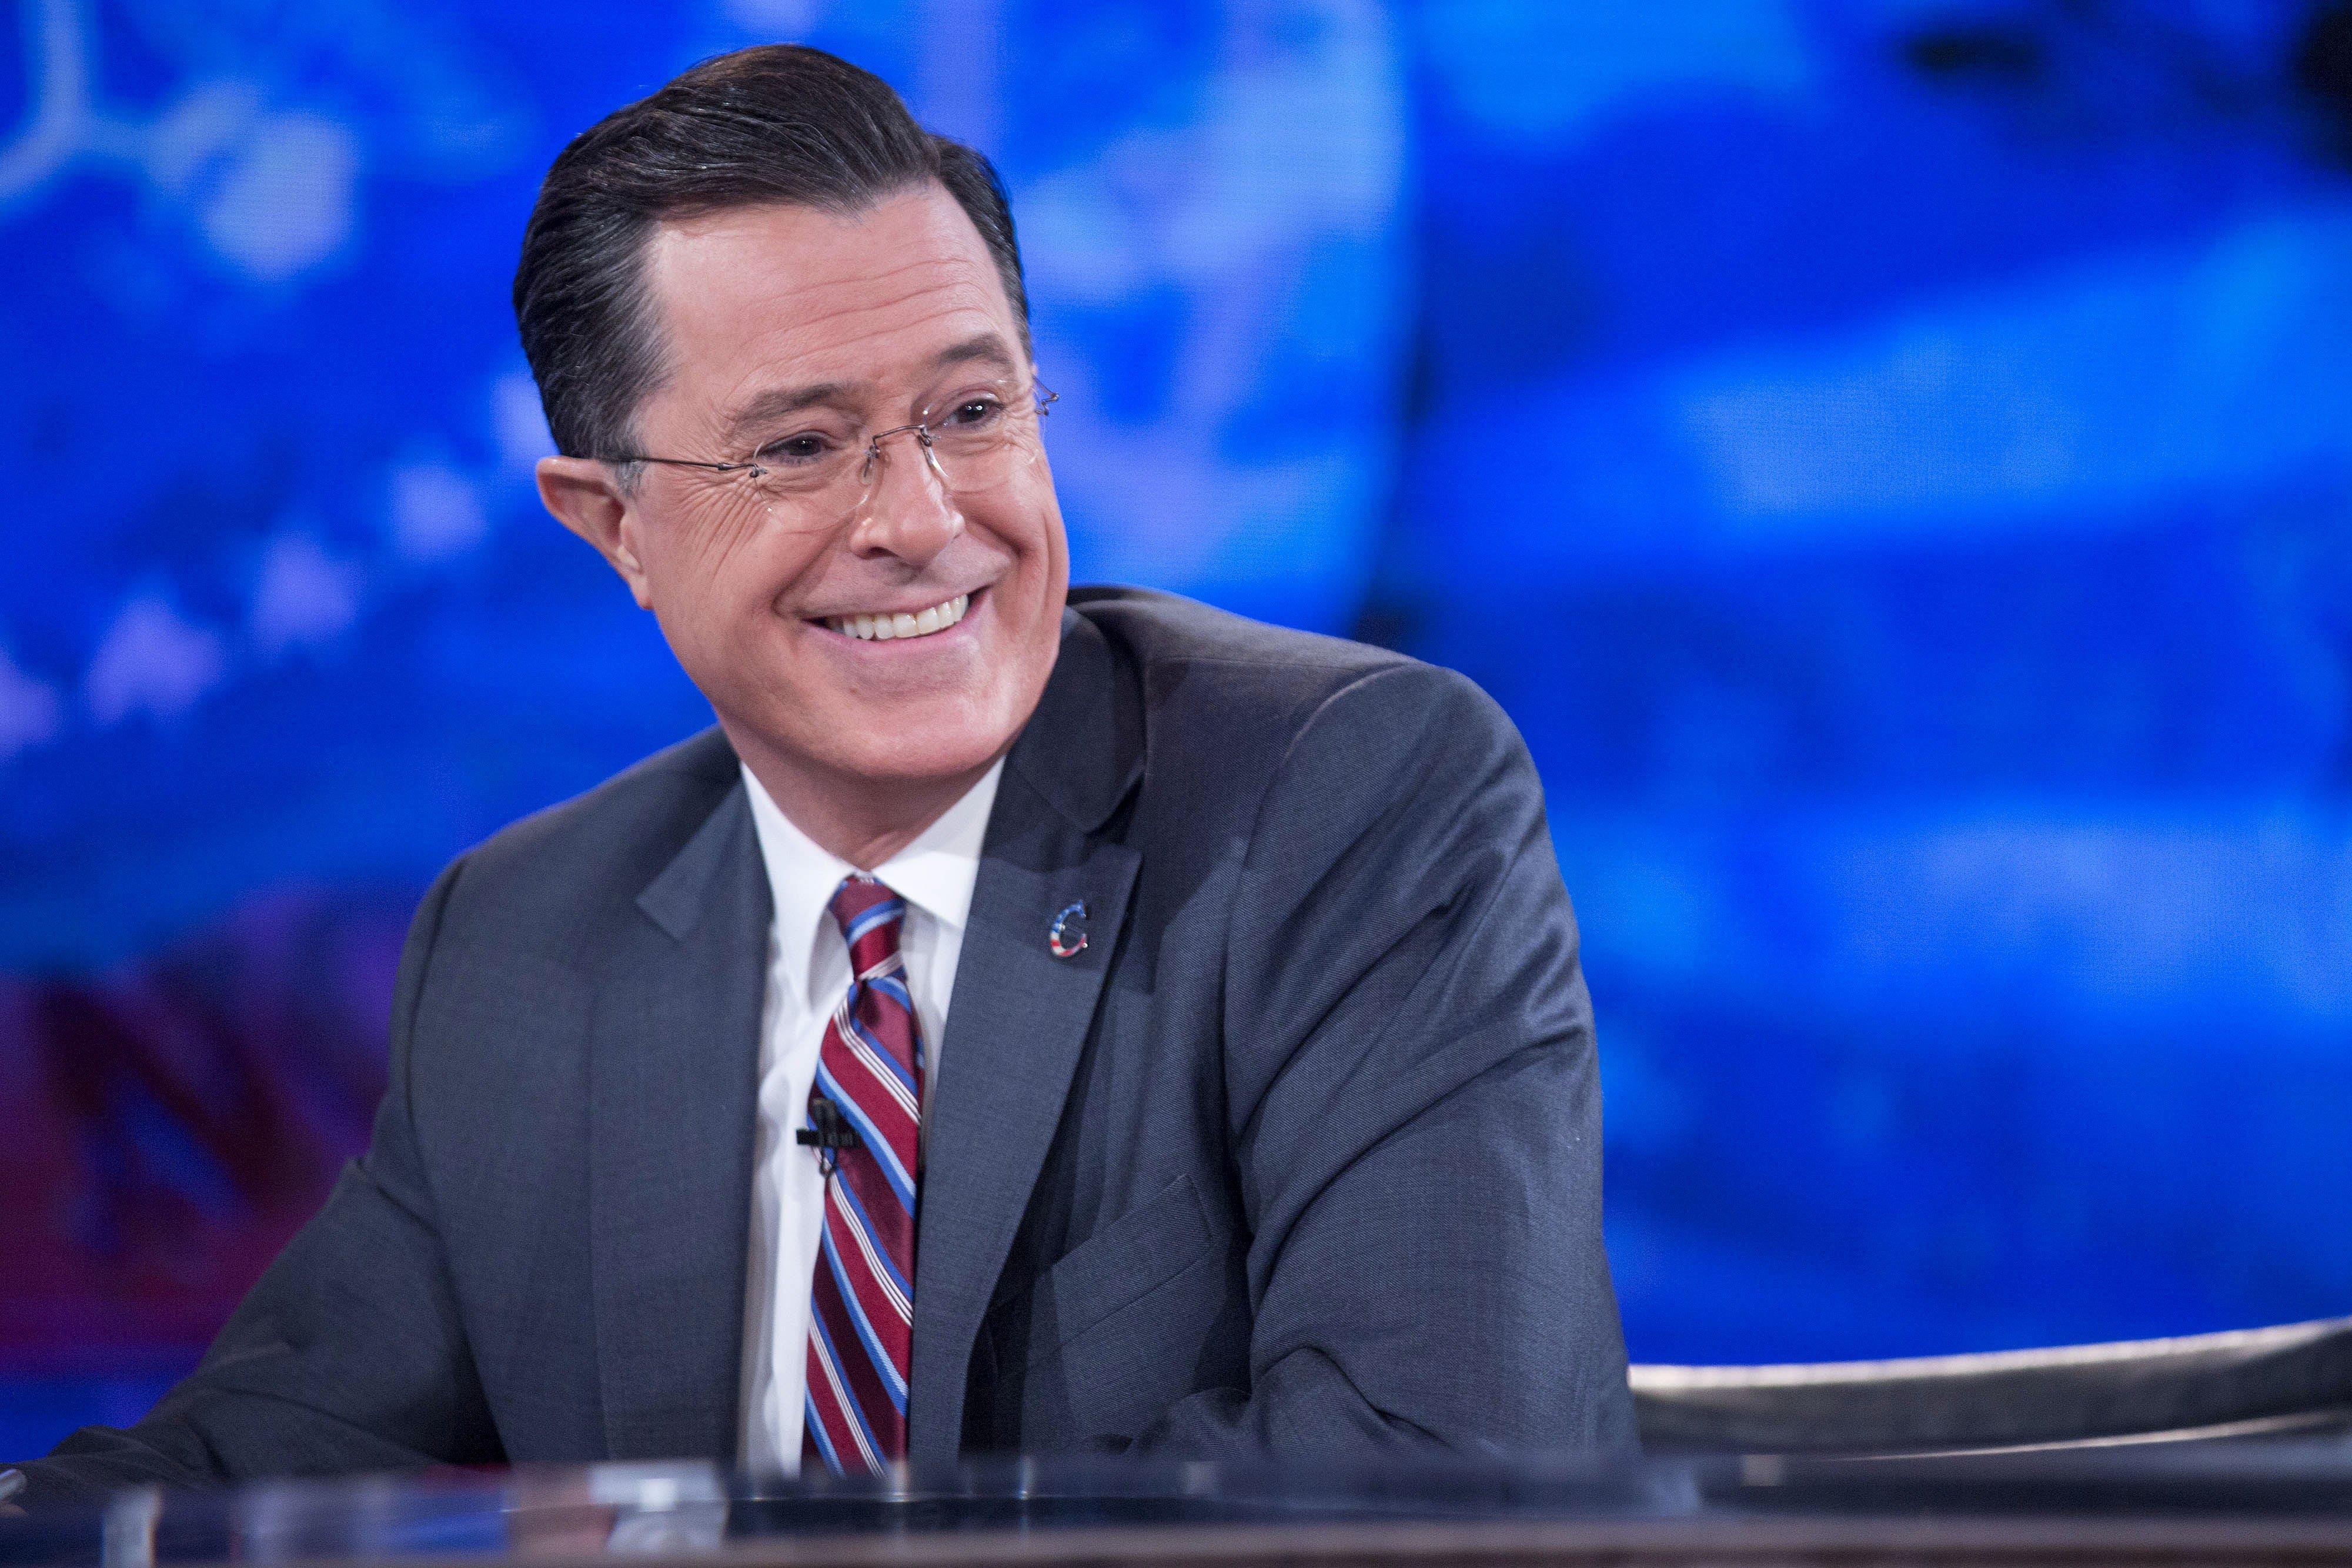 Stephen Colbert Wallpaper 13   4000 X 2667 stmednet 4000x2667